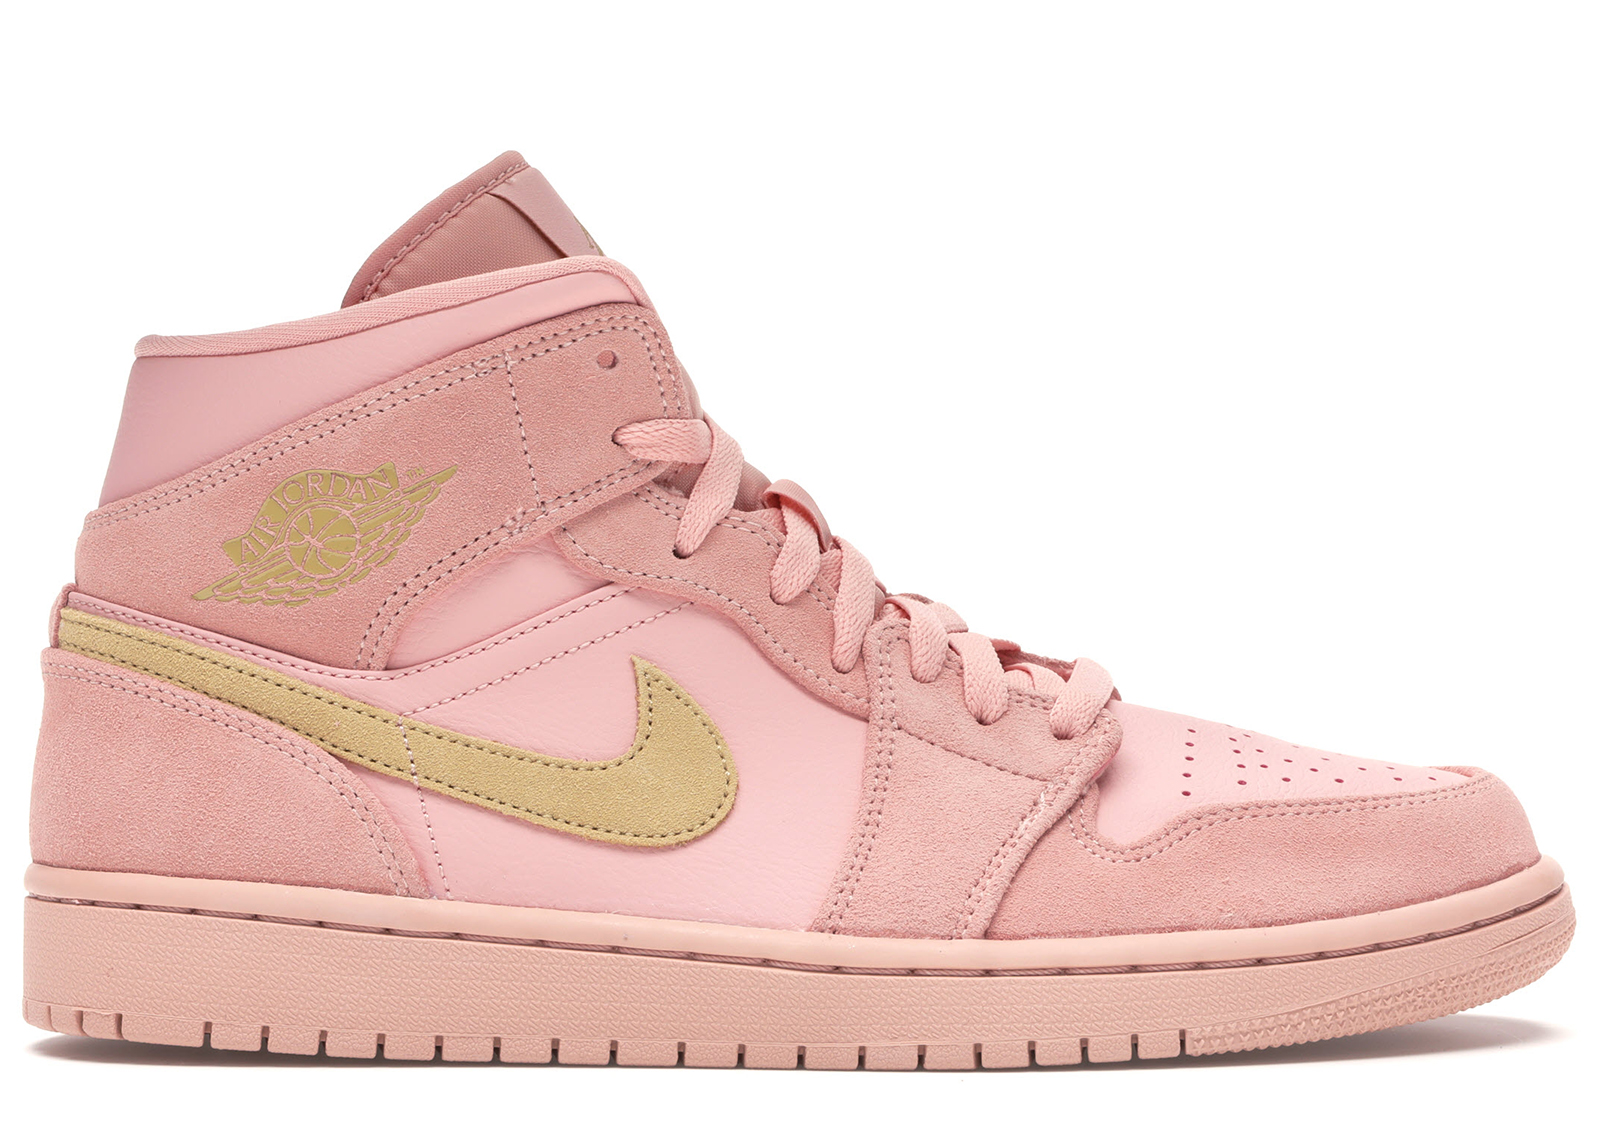 AIR JORDAN 1 RETRO MID SE CORAL STARDUST PINK 852542 600 NEW MIDS SELLING SUEDE